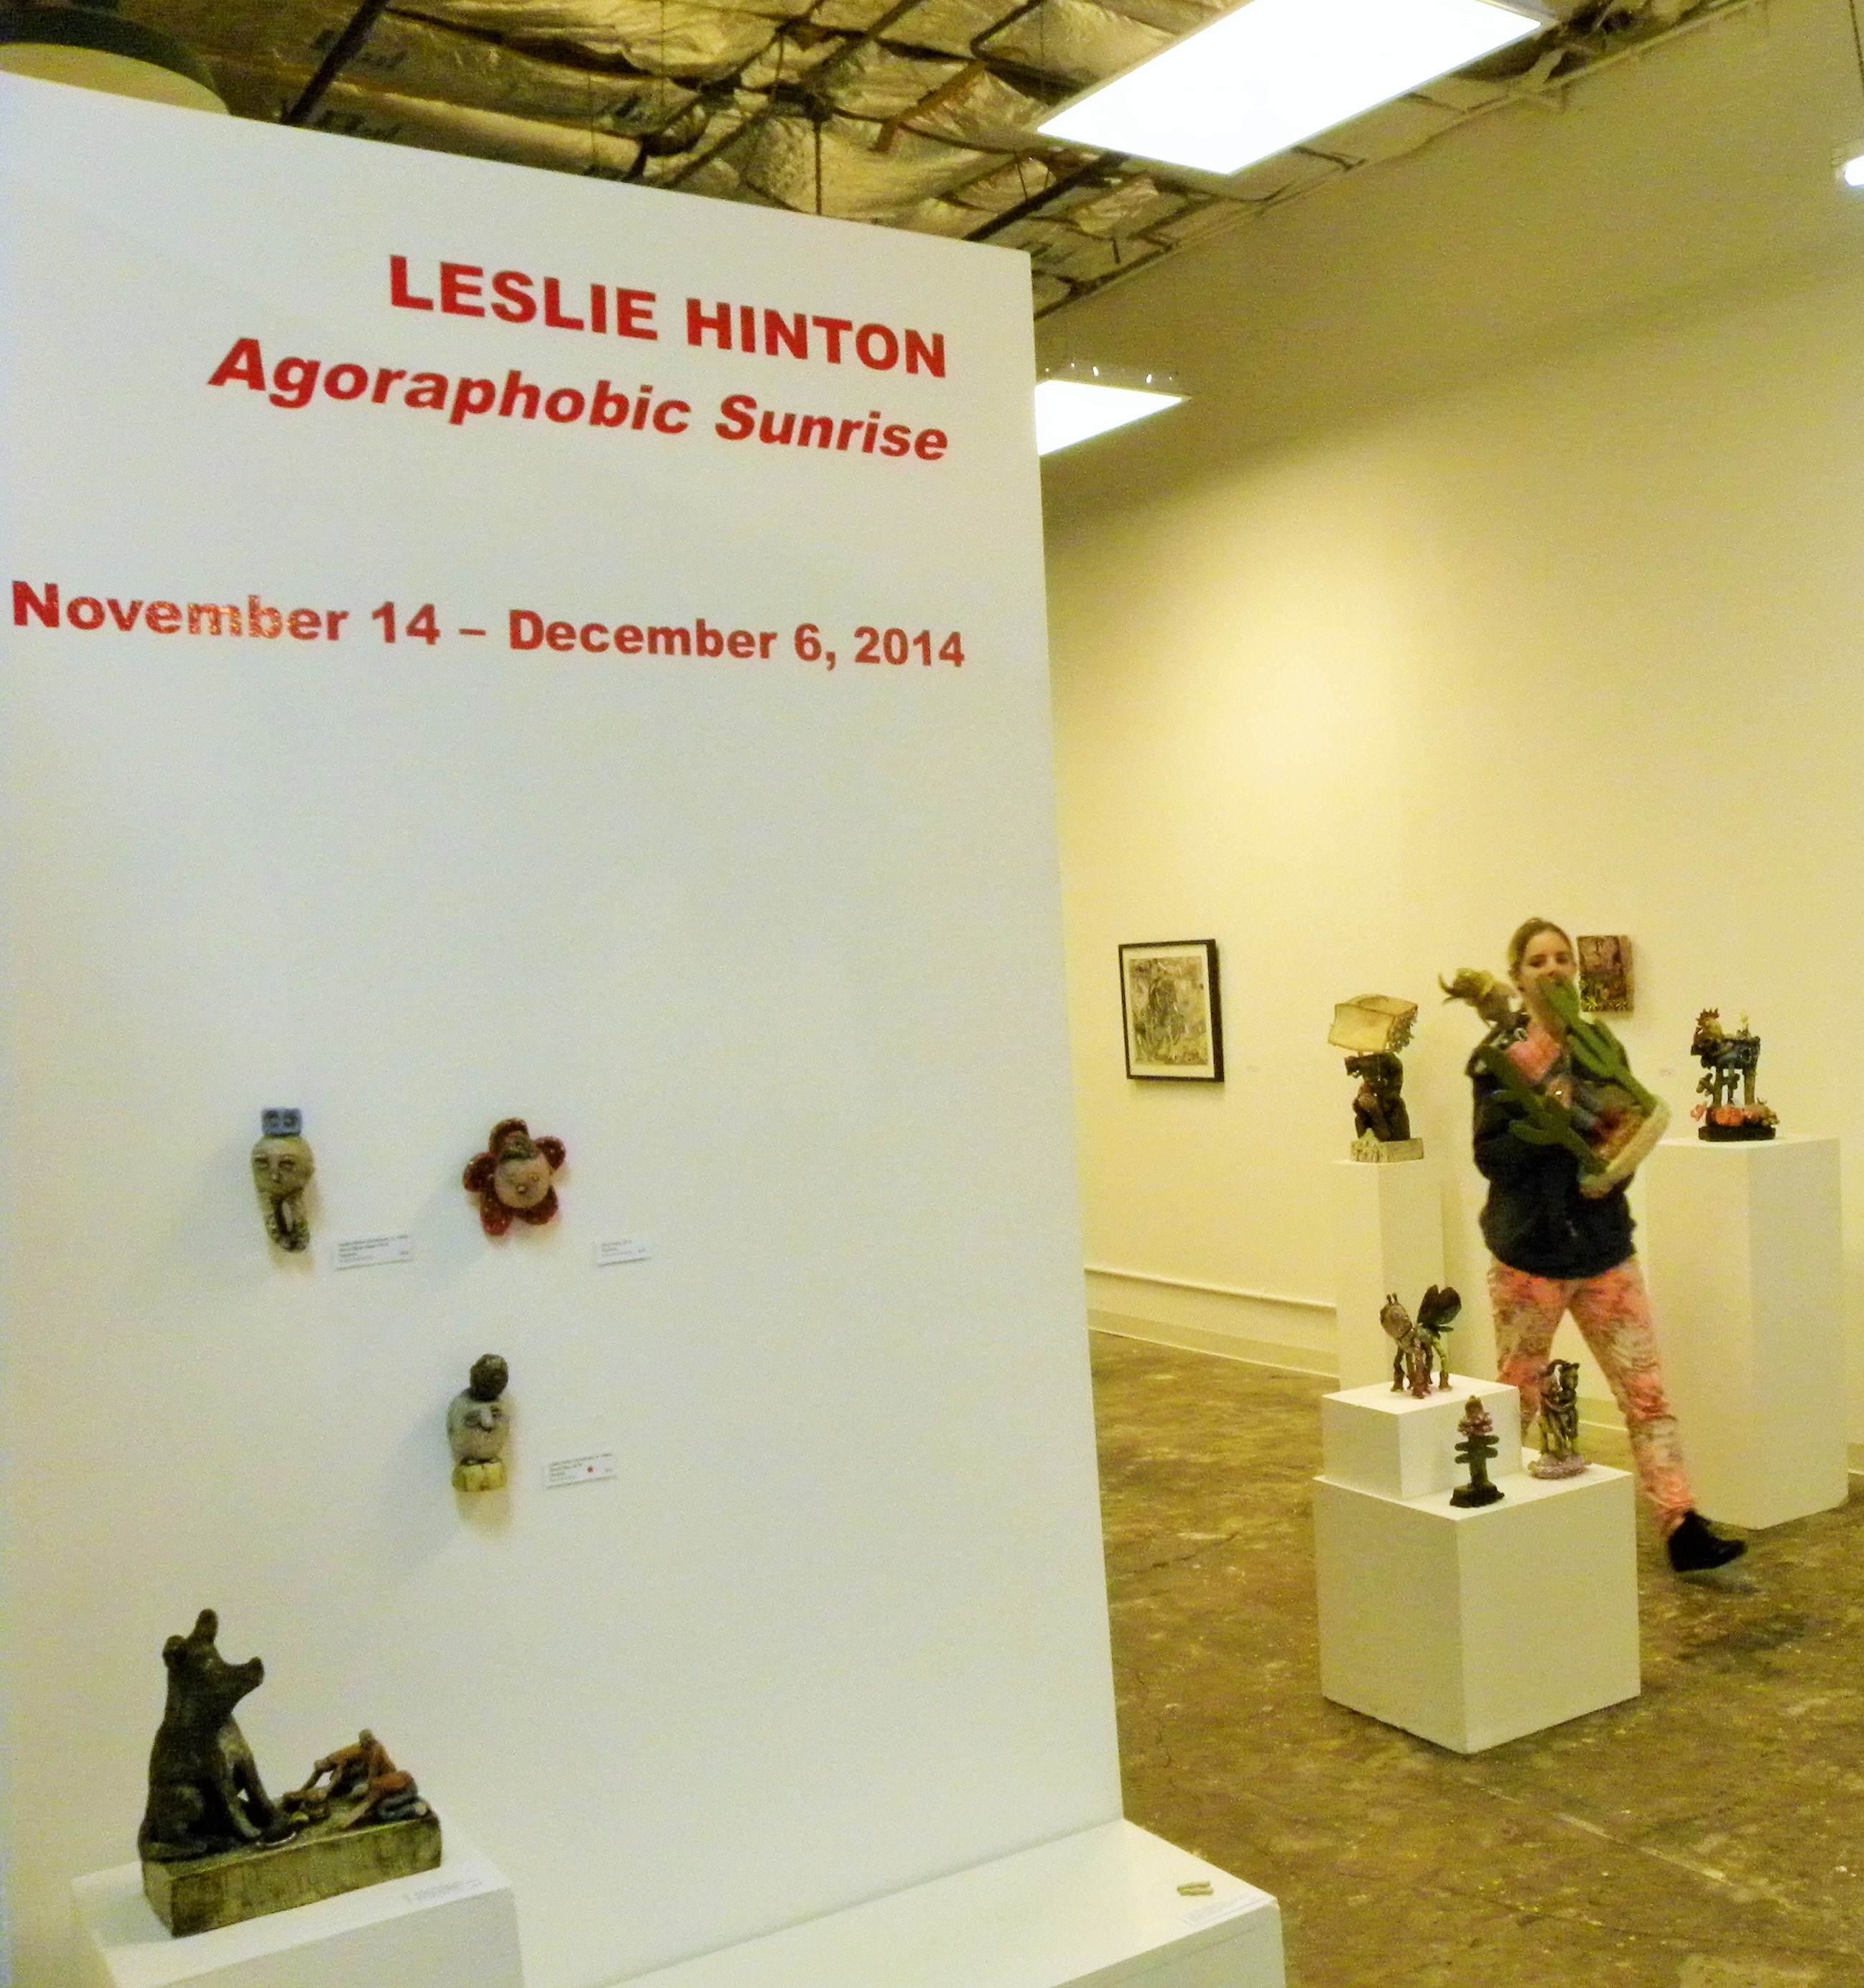 Work at If Art Gallery title and descriptions | Leslie Hinton